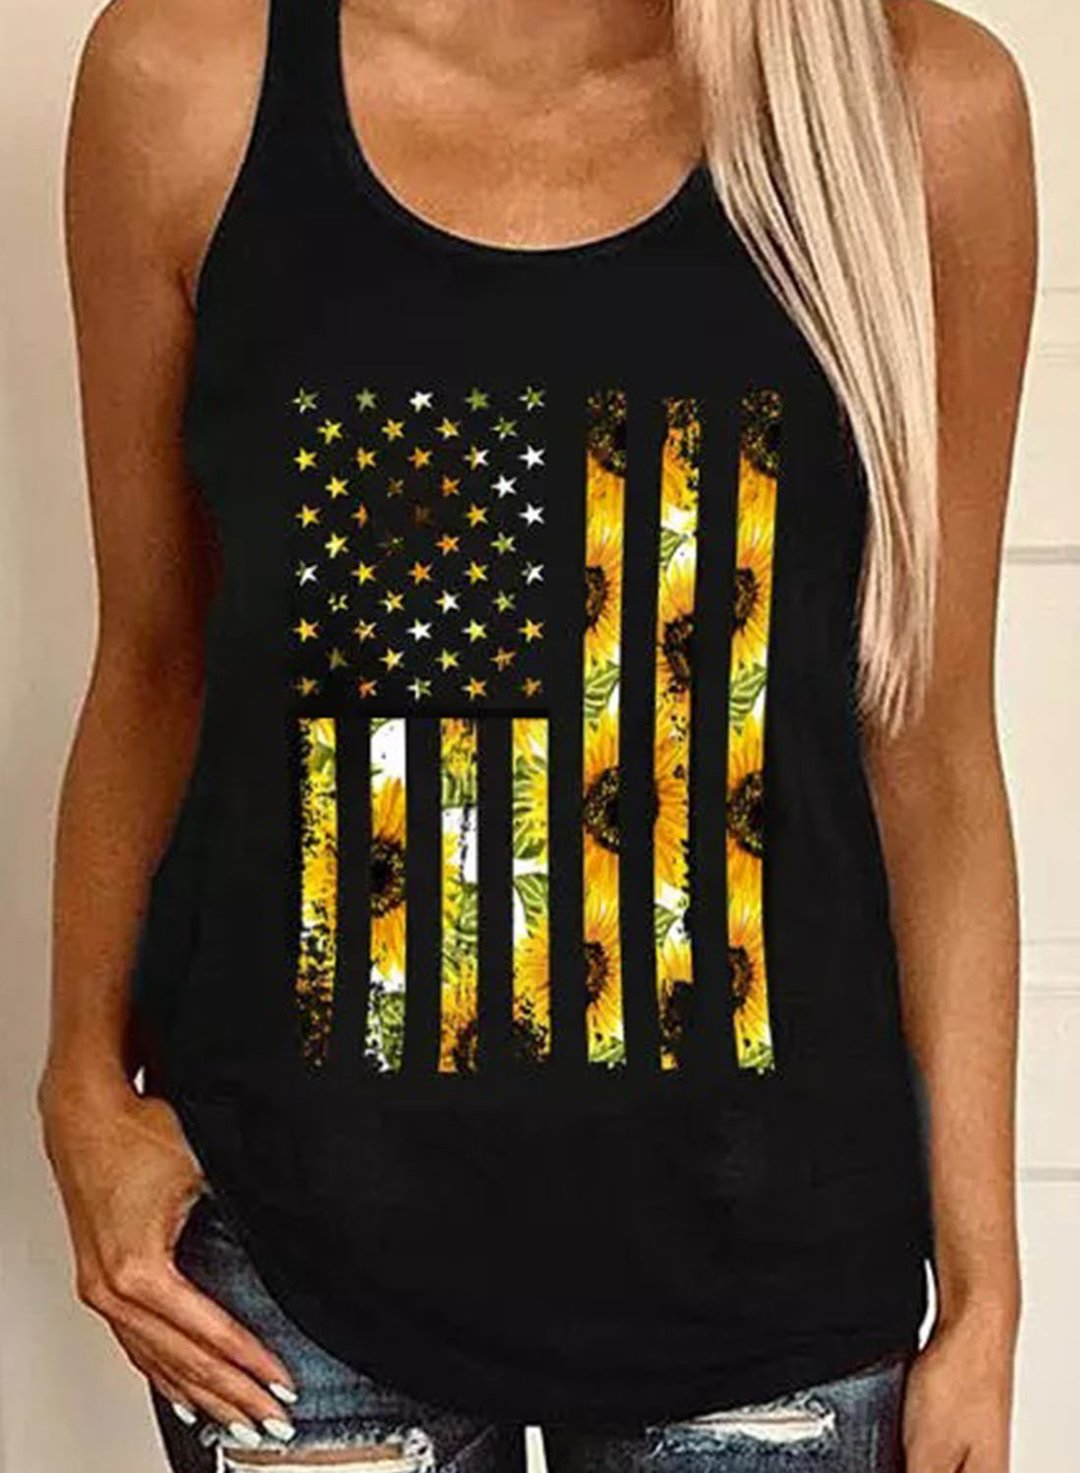 Black Women's Tank Tops Flag Floral Tank Tops LC2561796-2